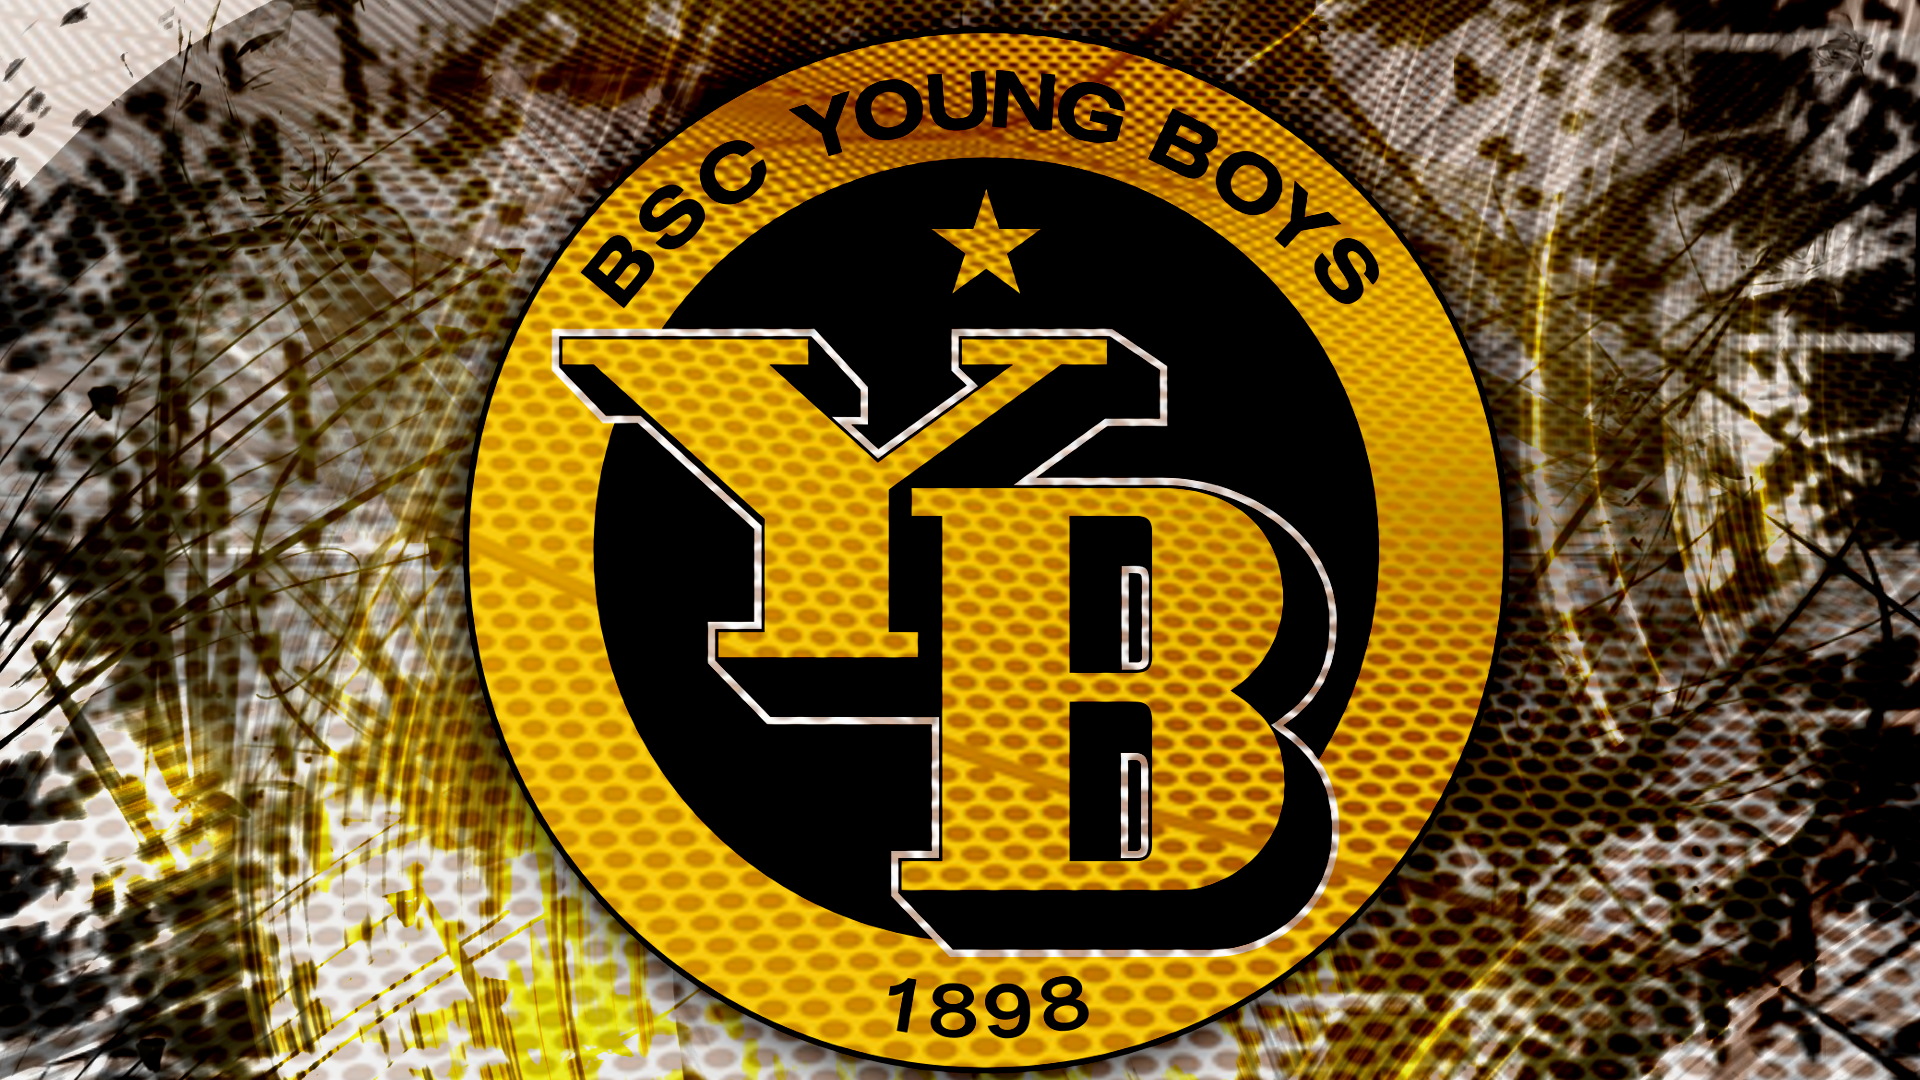 High Resolution Wallpaper | BSC Young Boys 1920x1080 px